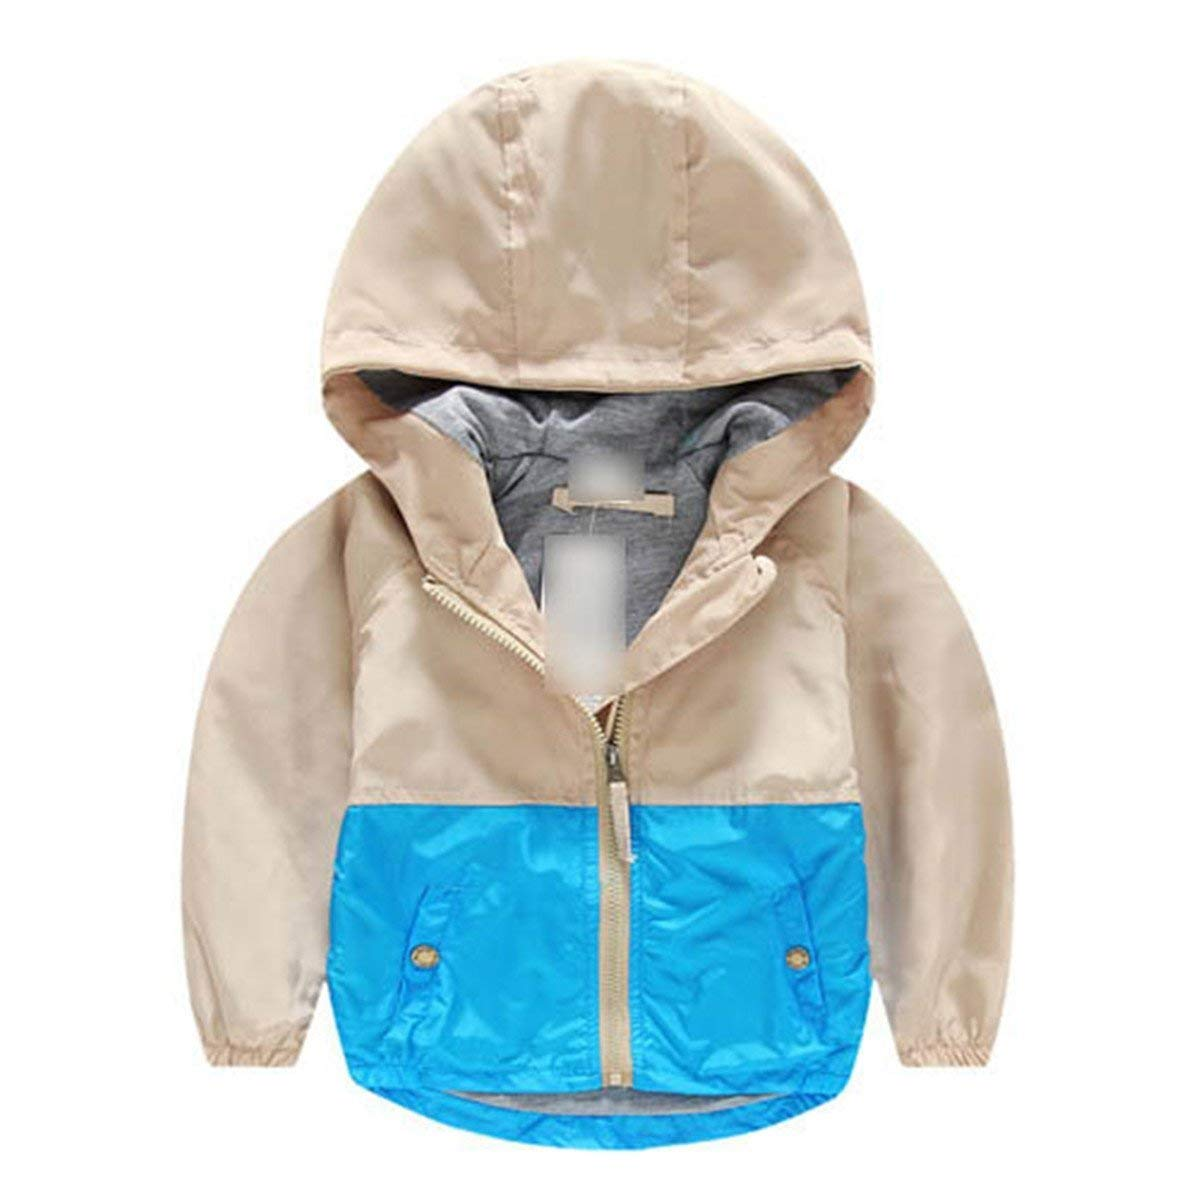 bcc3207bd Get Quotations · Yamed Hooded Children Windbreaker Baby Spring Jackets for Boys  Jacket Coat Girls Clothes Kids Outerwear